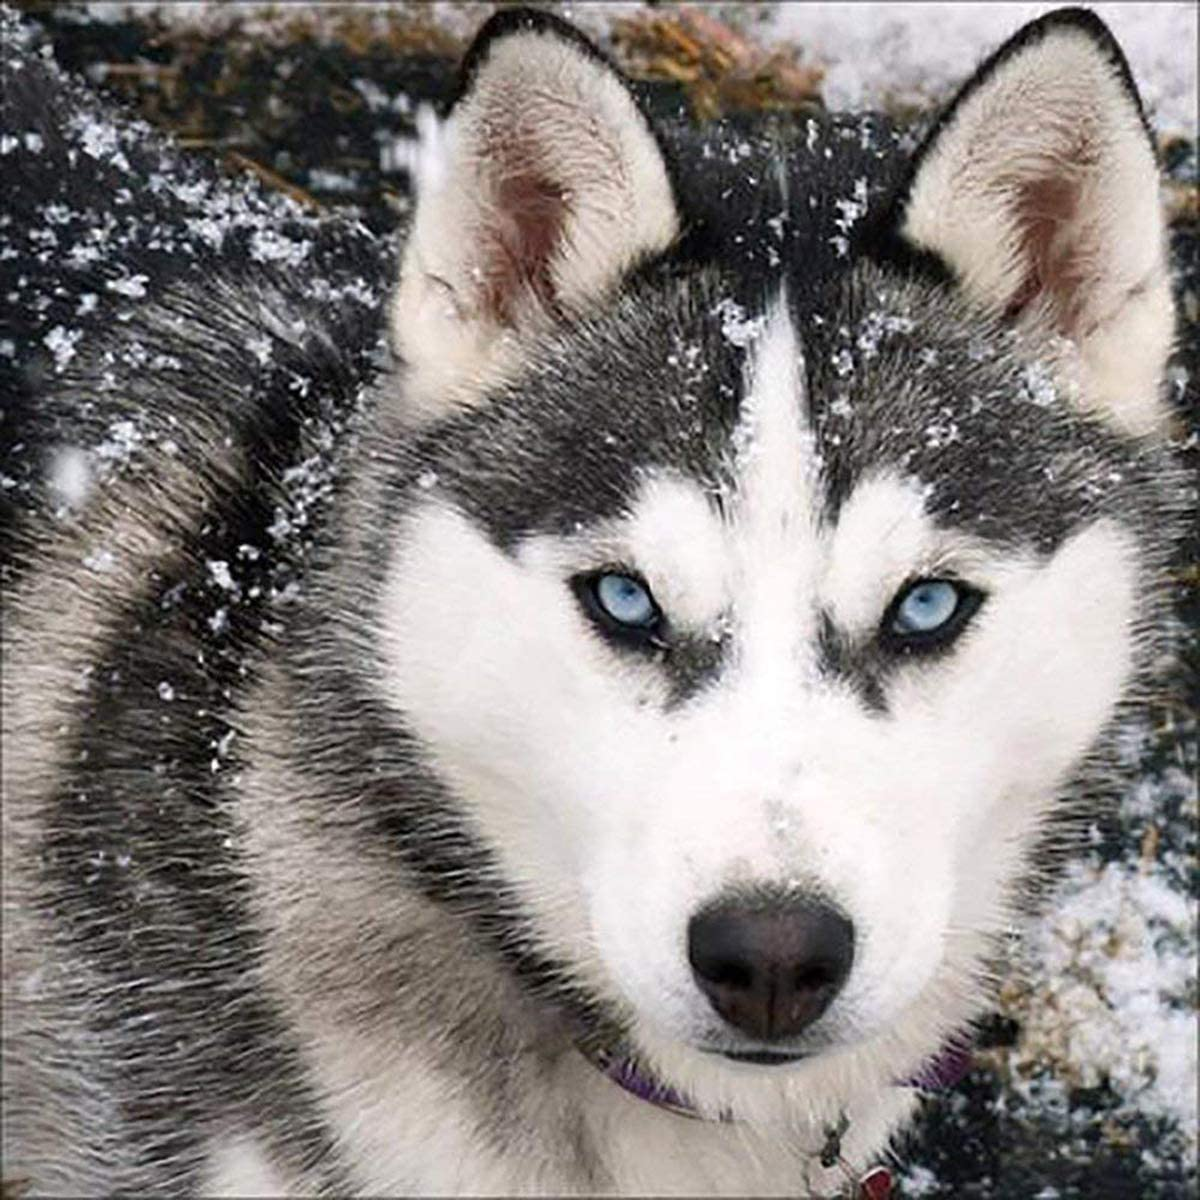 DIY 5D Diamond Painting Kit Dog Embroidery Husky Ranking TOP12 Full Popular brand in the world R